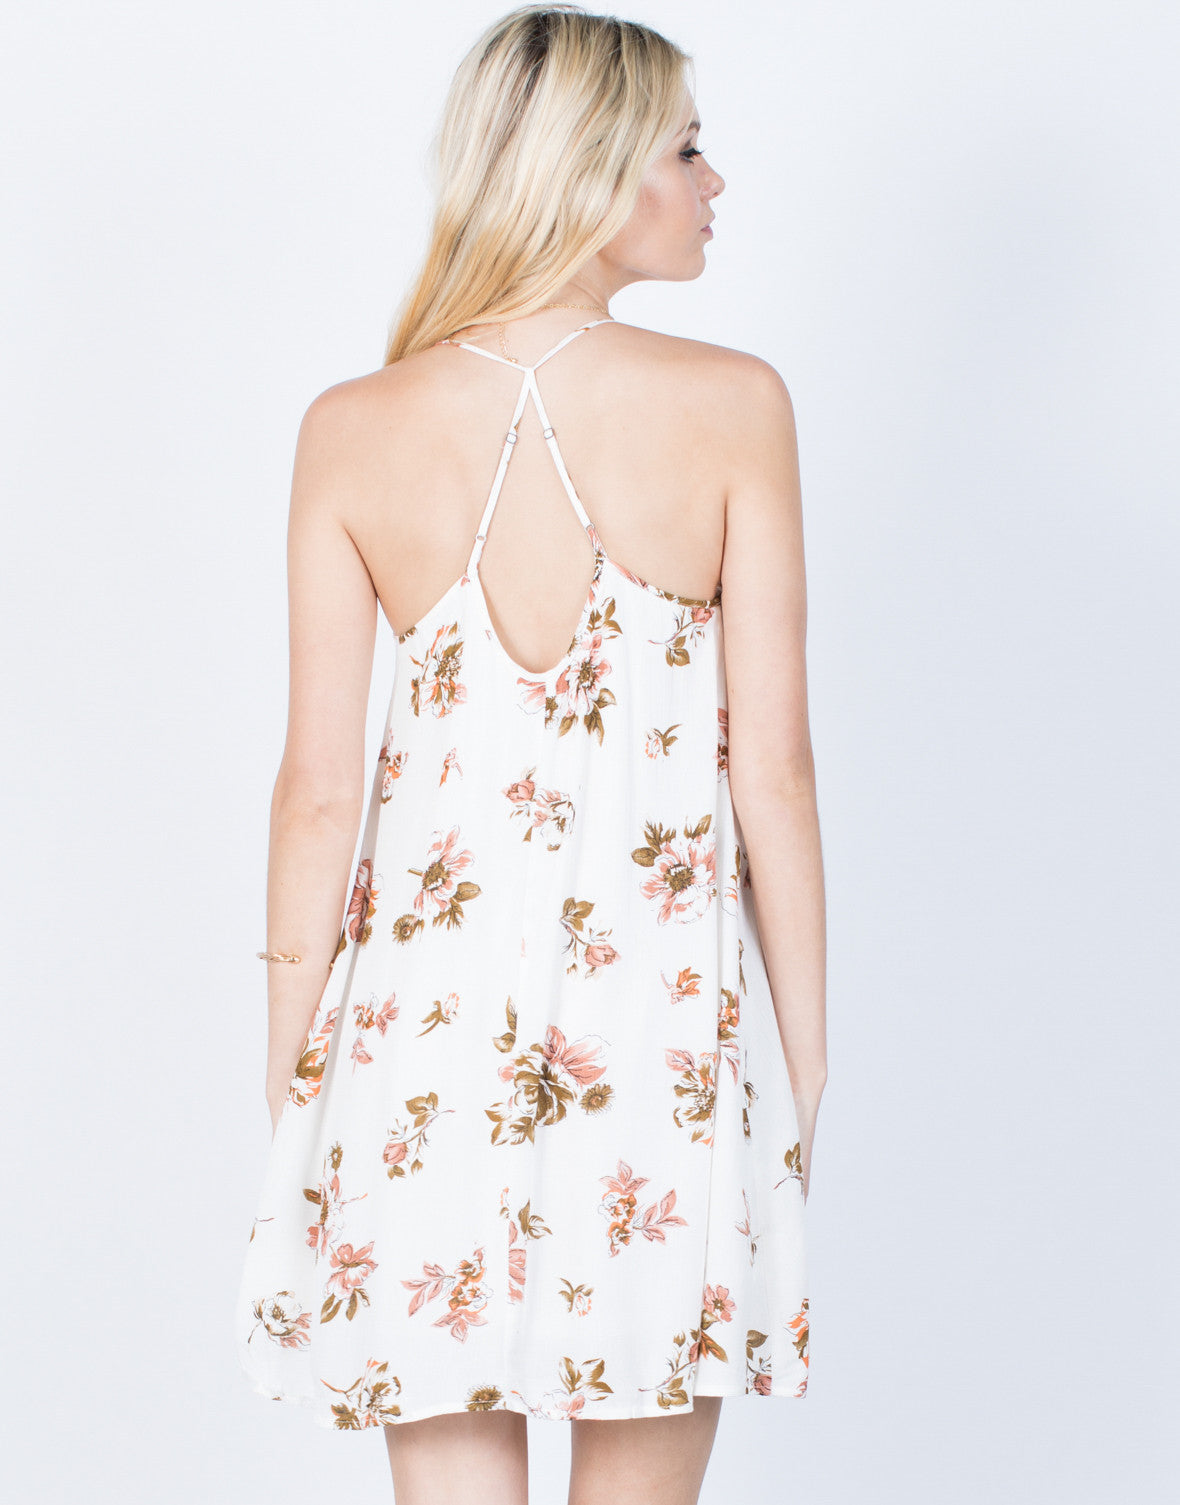 Back View of Sway with Florals Dress